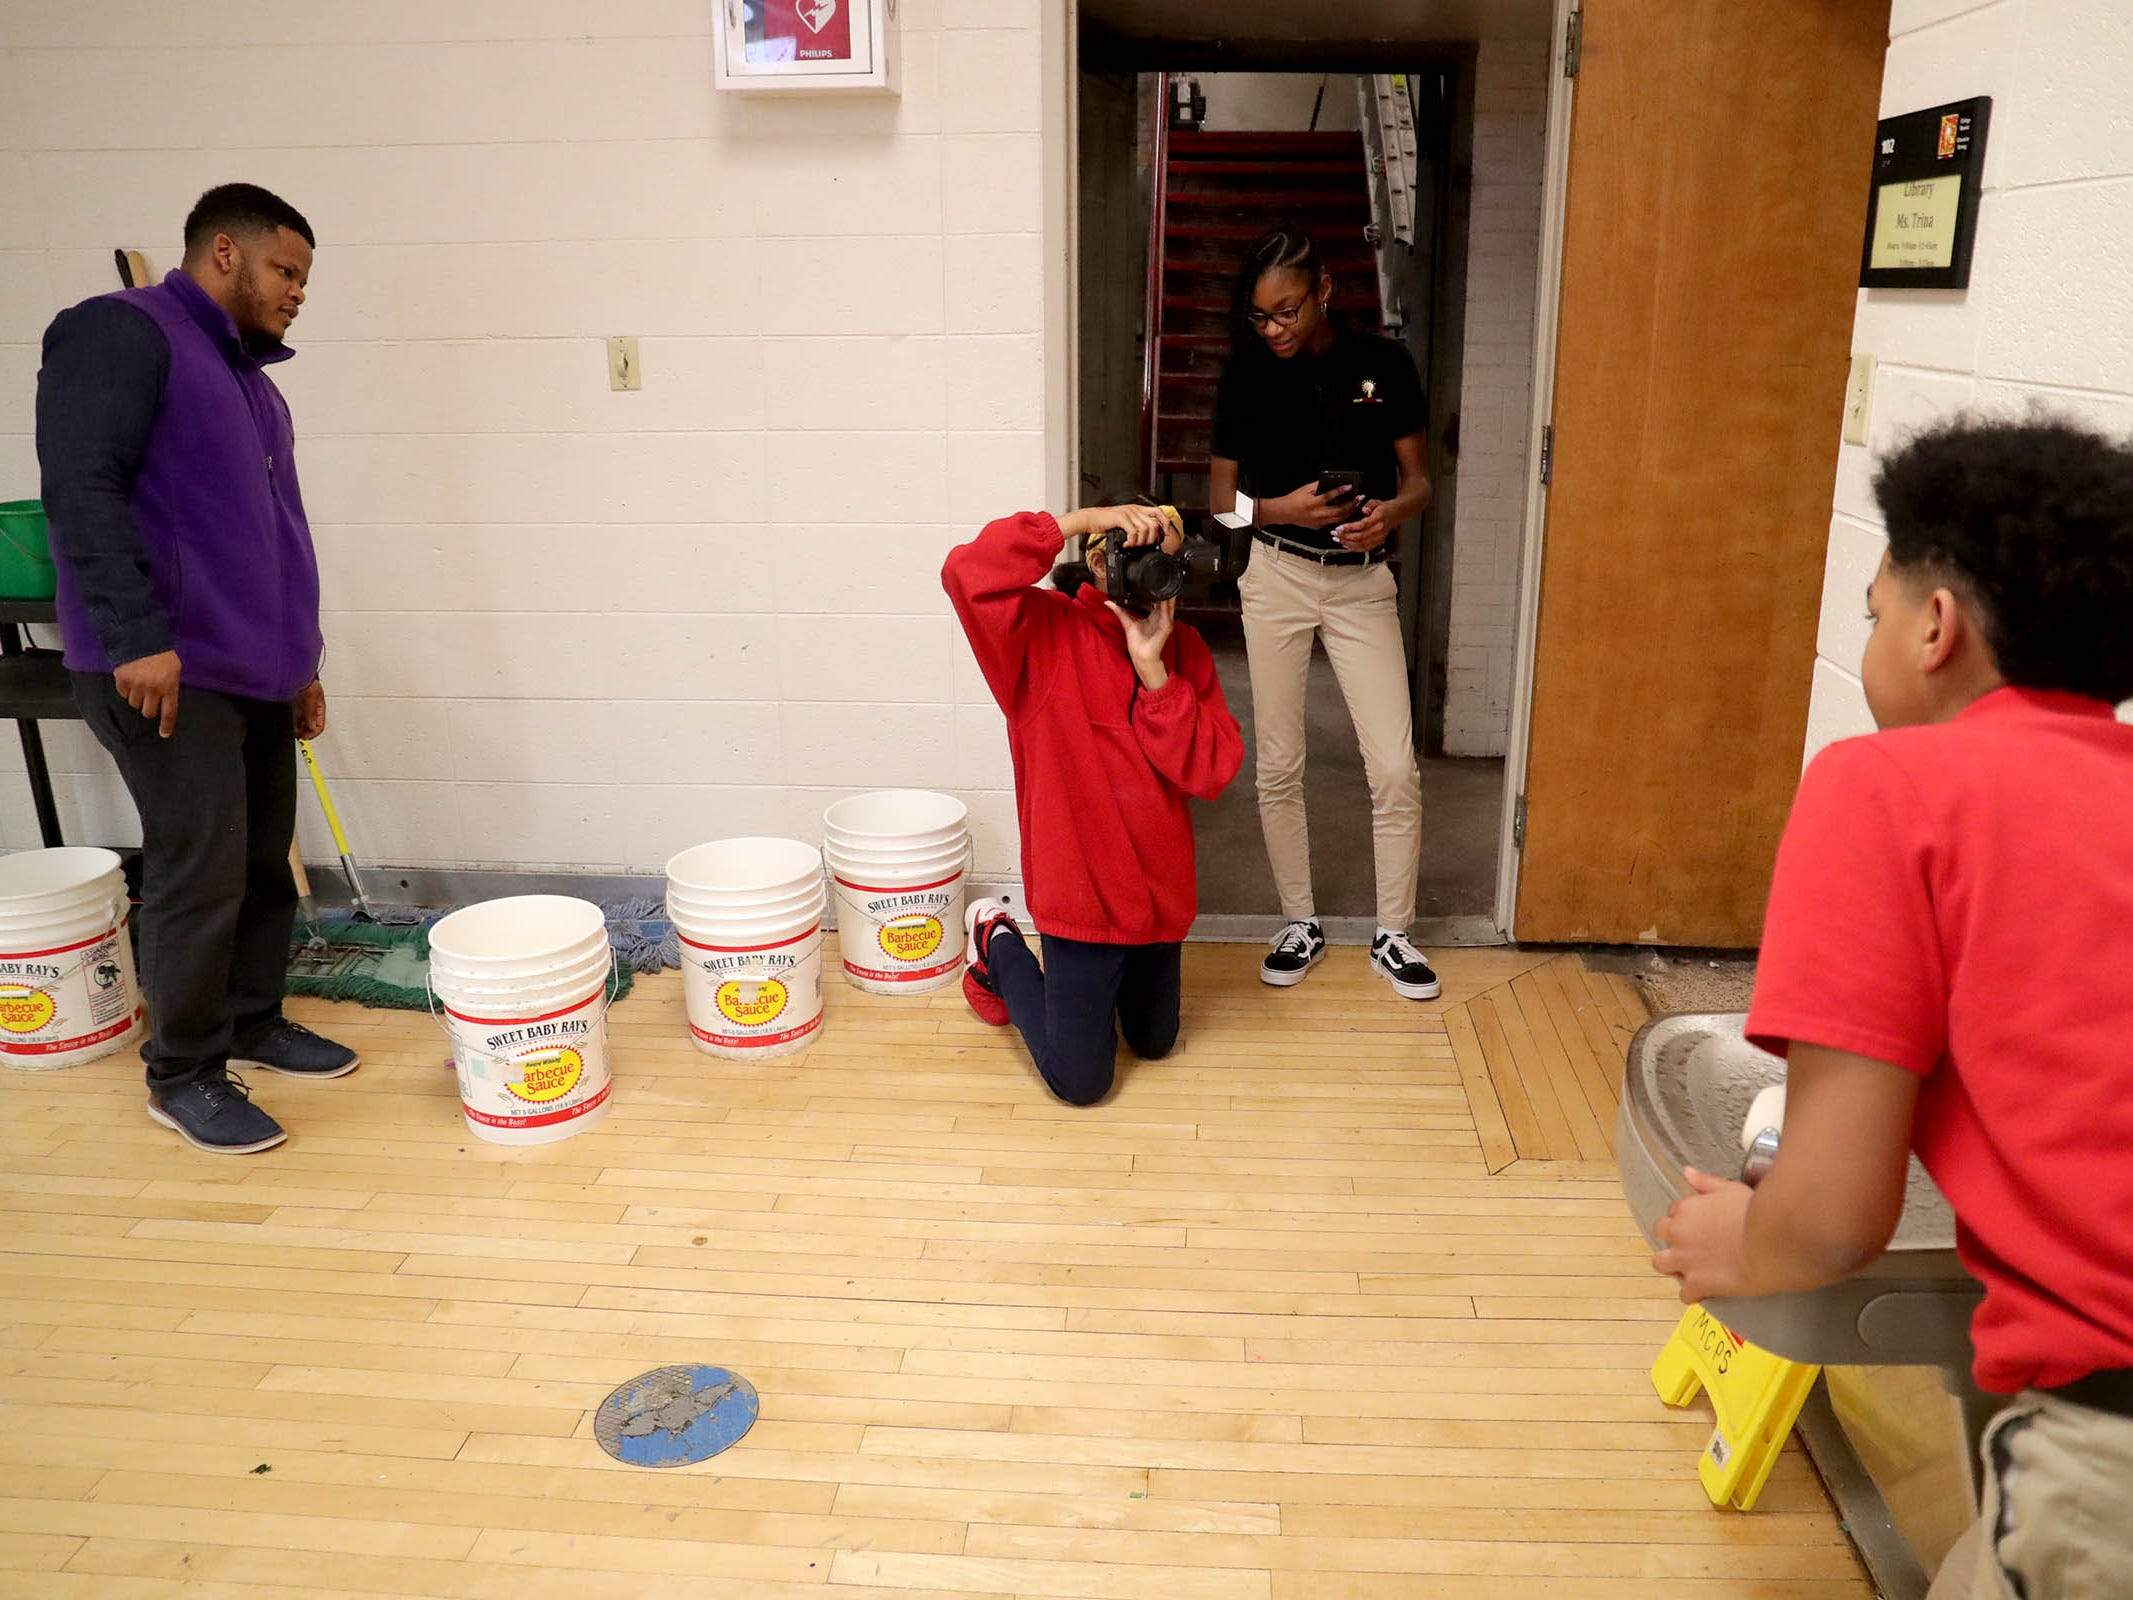 Milwaukee College Prep teacher Terrance Sims (left) and student Makynzie Russ (standing) watch as Ryanne Rosemond takes photos of Joey Hill reenacting a historic photo of Cecil Williams drinking from a whites-only water fountain in the 1950s.